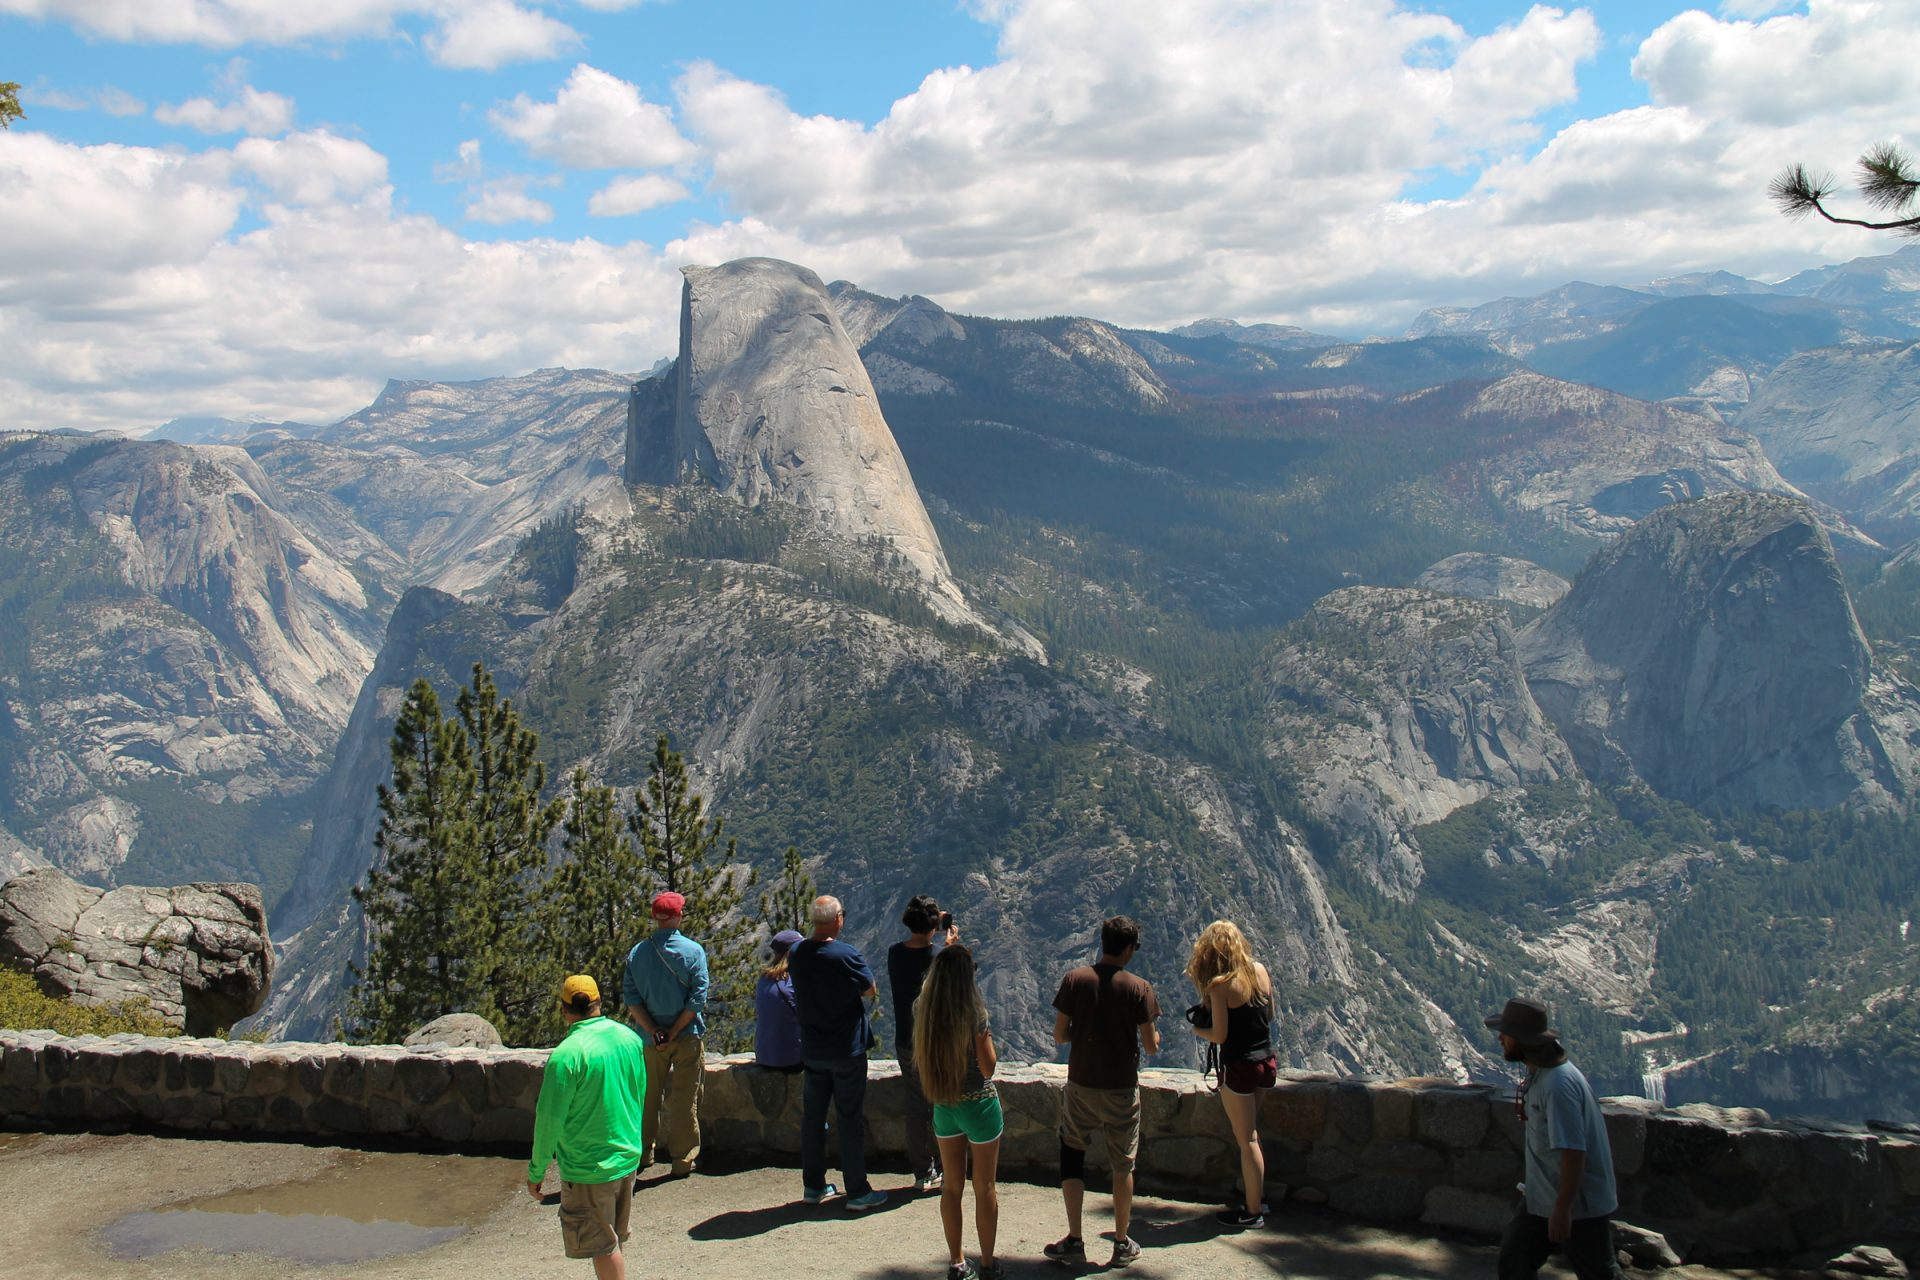 Tourists Looking at Half Dome